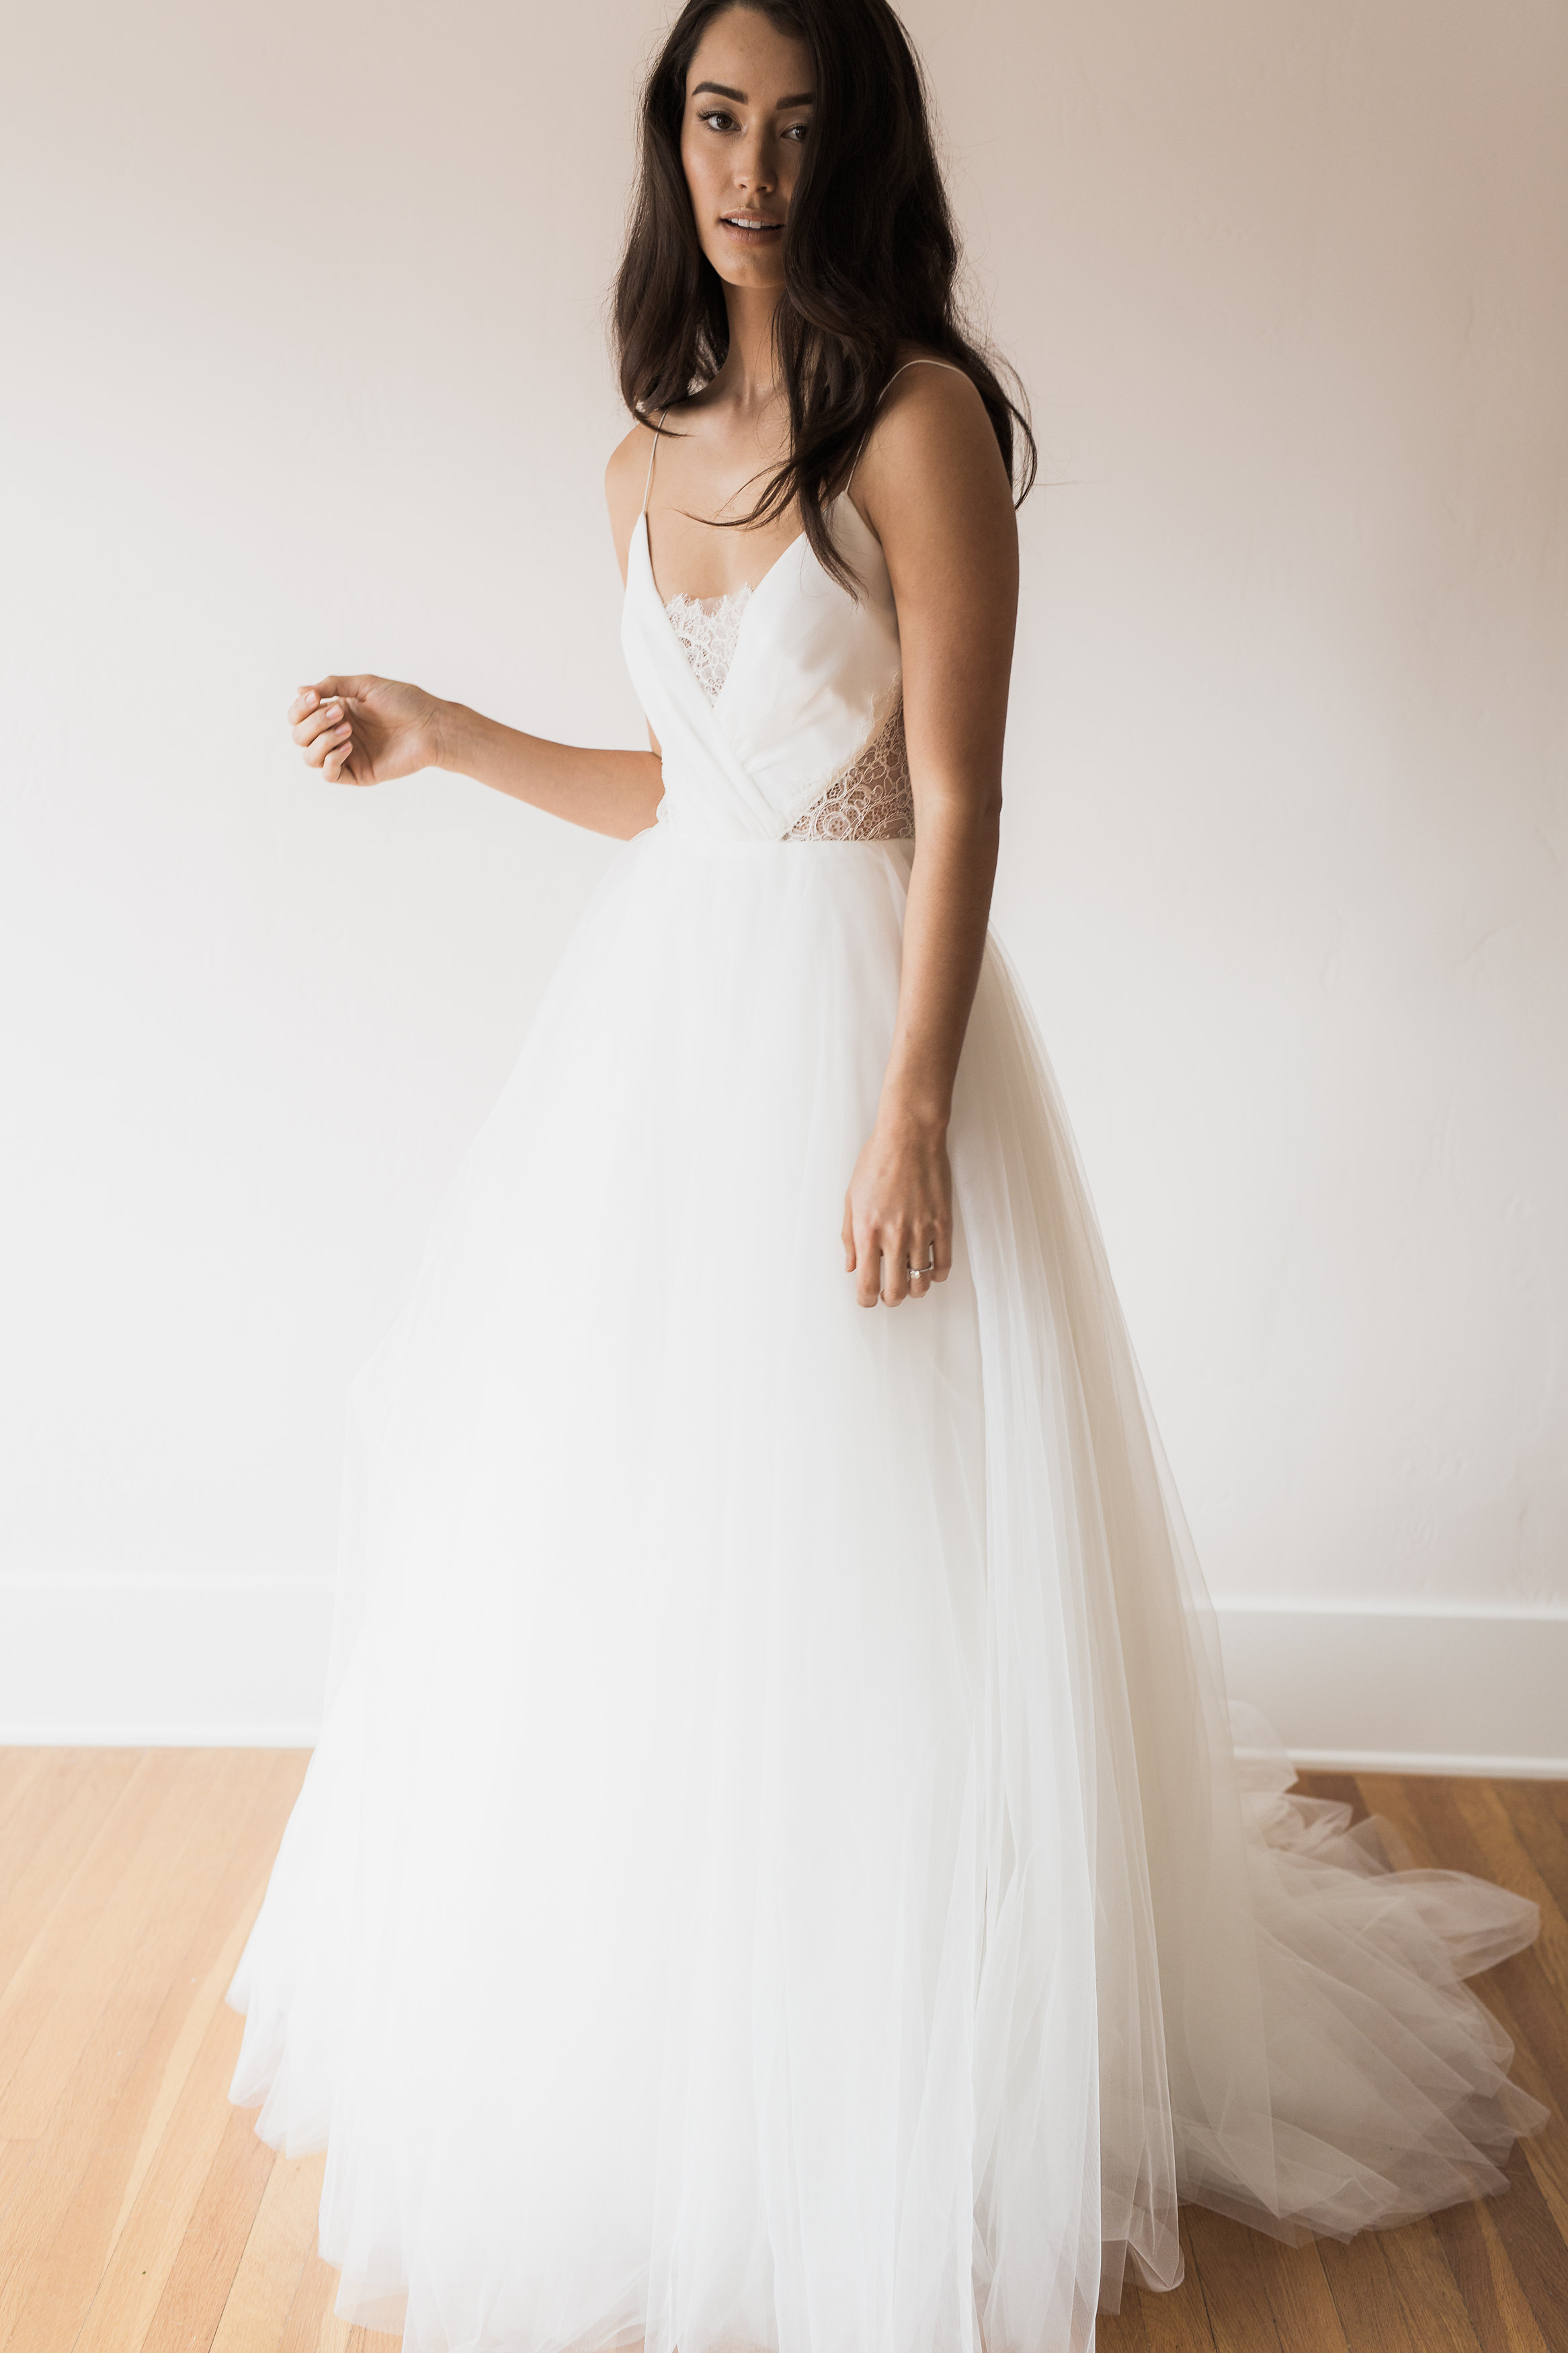 San Diego Trunk Shows — The Dress Theory